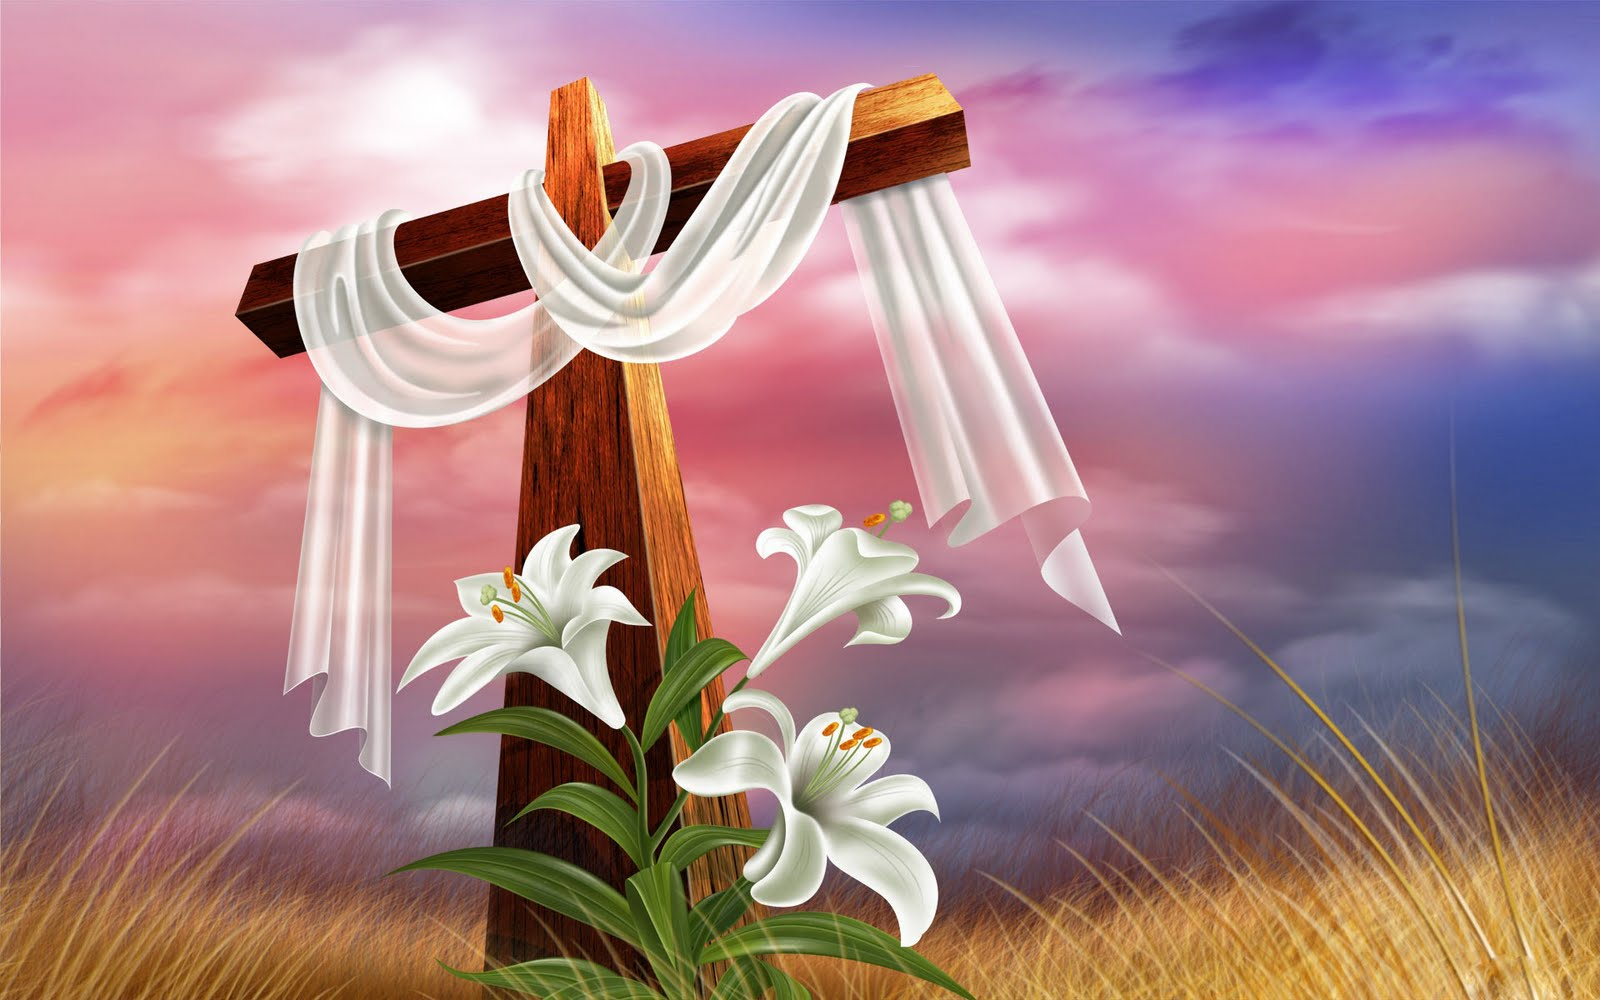 Easter Wallpaper Backgrounds 1600x1000